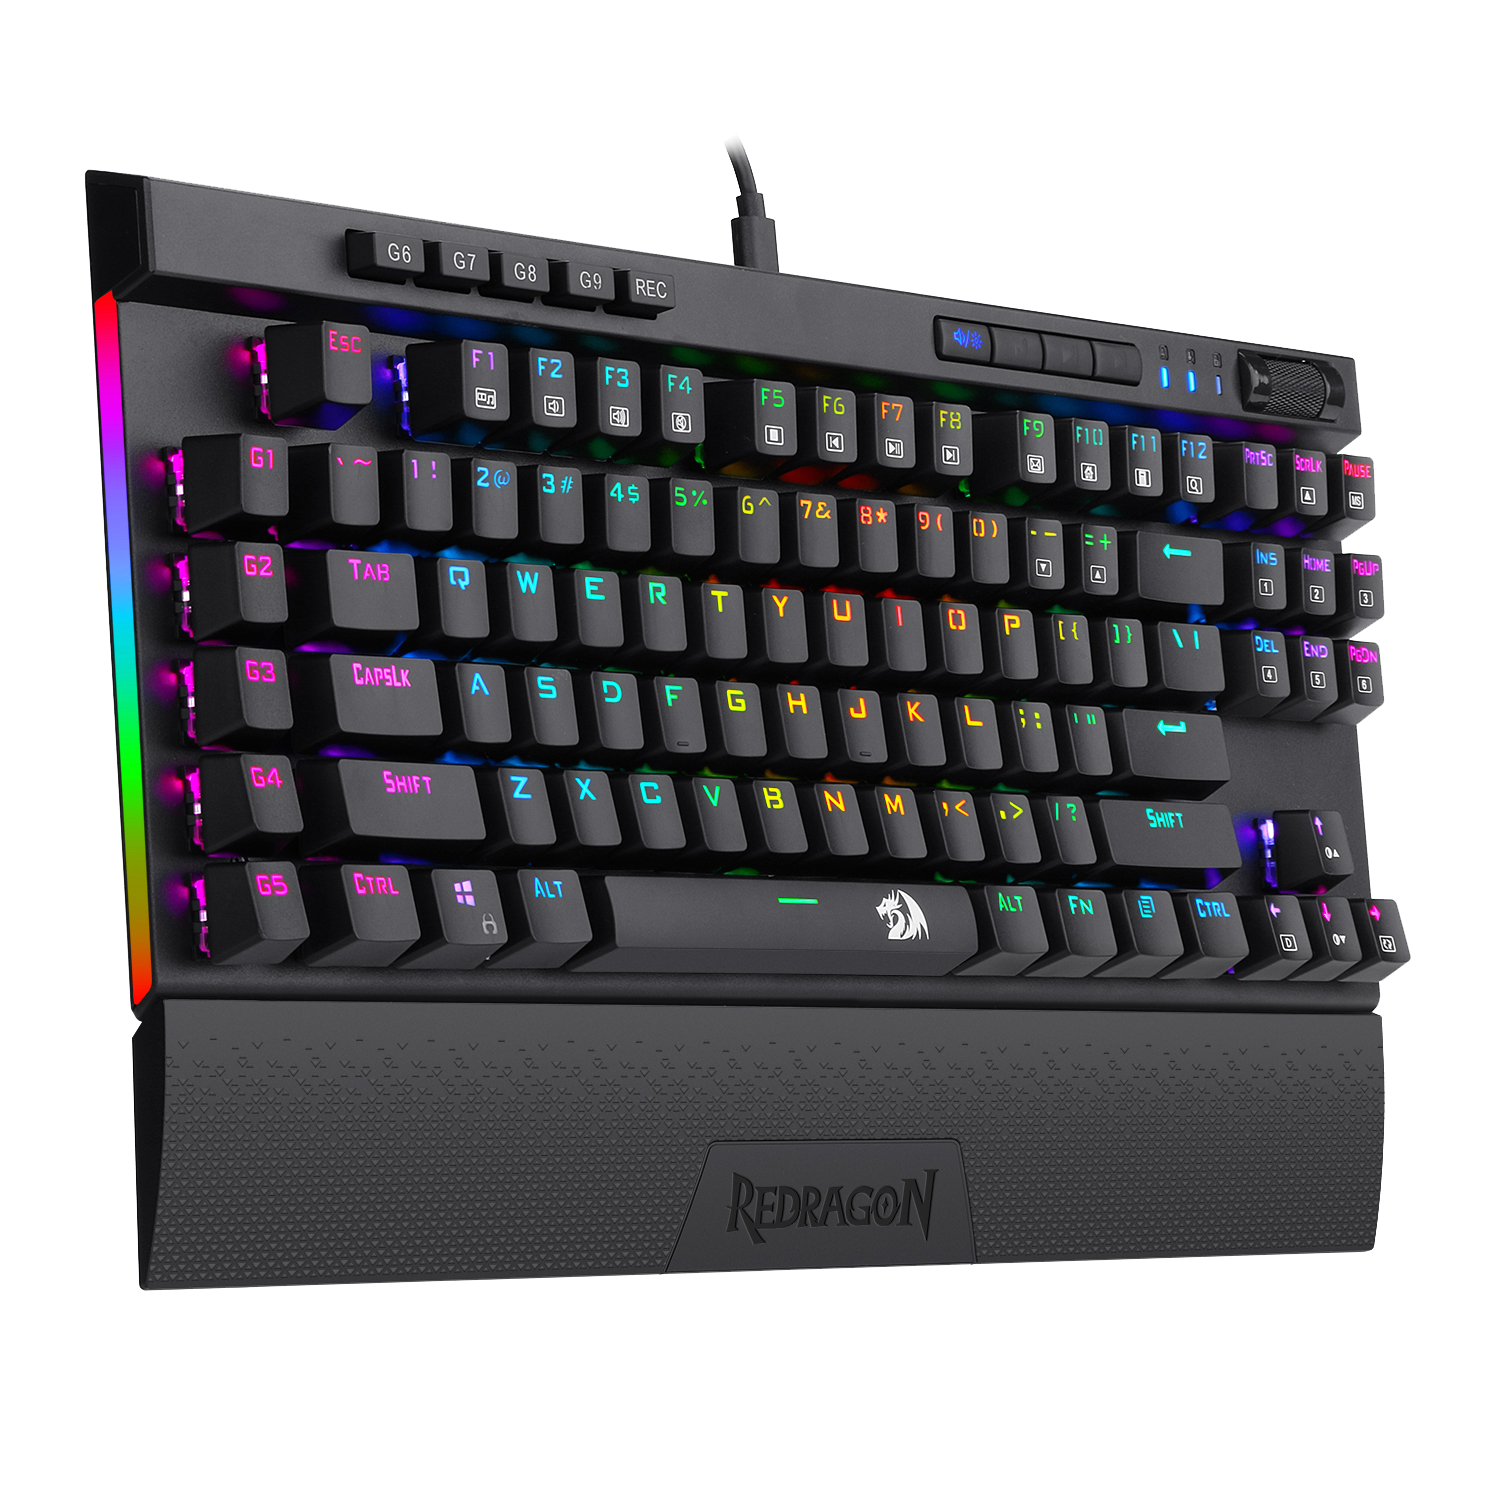 Redragon K587 MAGIC-WAND 87 Keys Compact RGB TKL Mechanical Gaming Keyboard 8